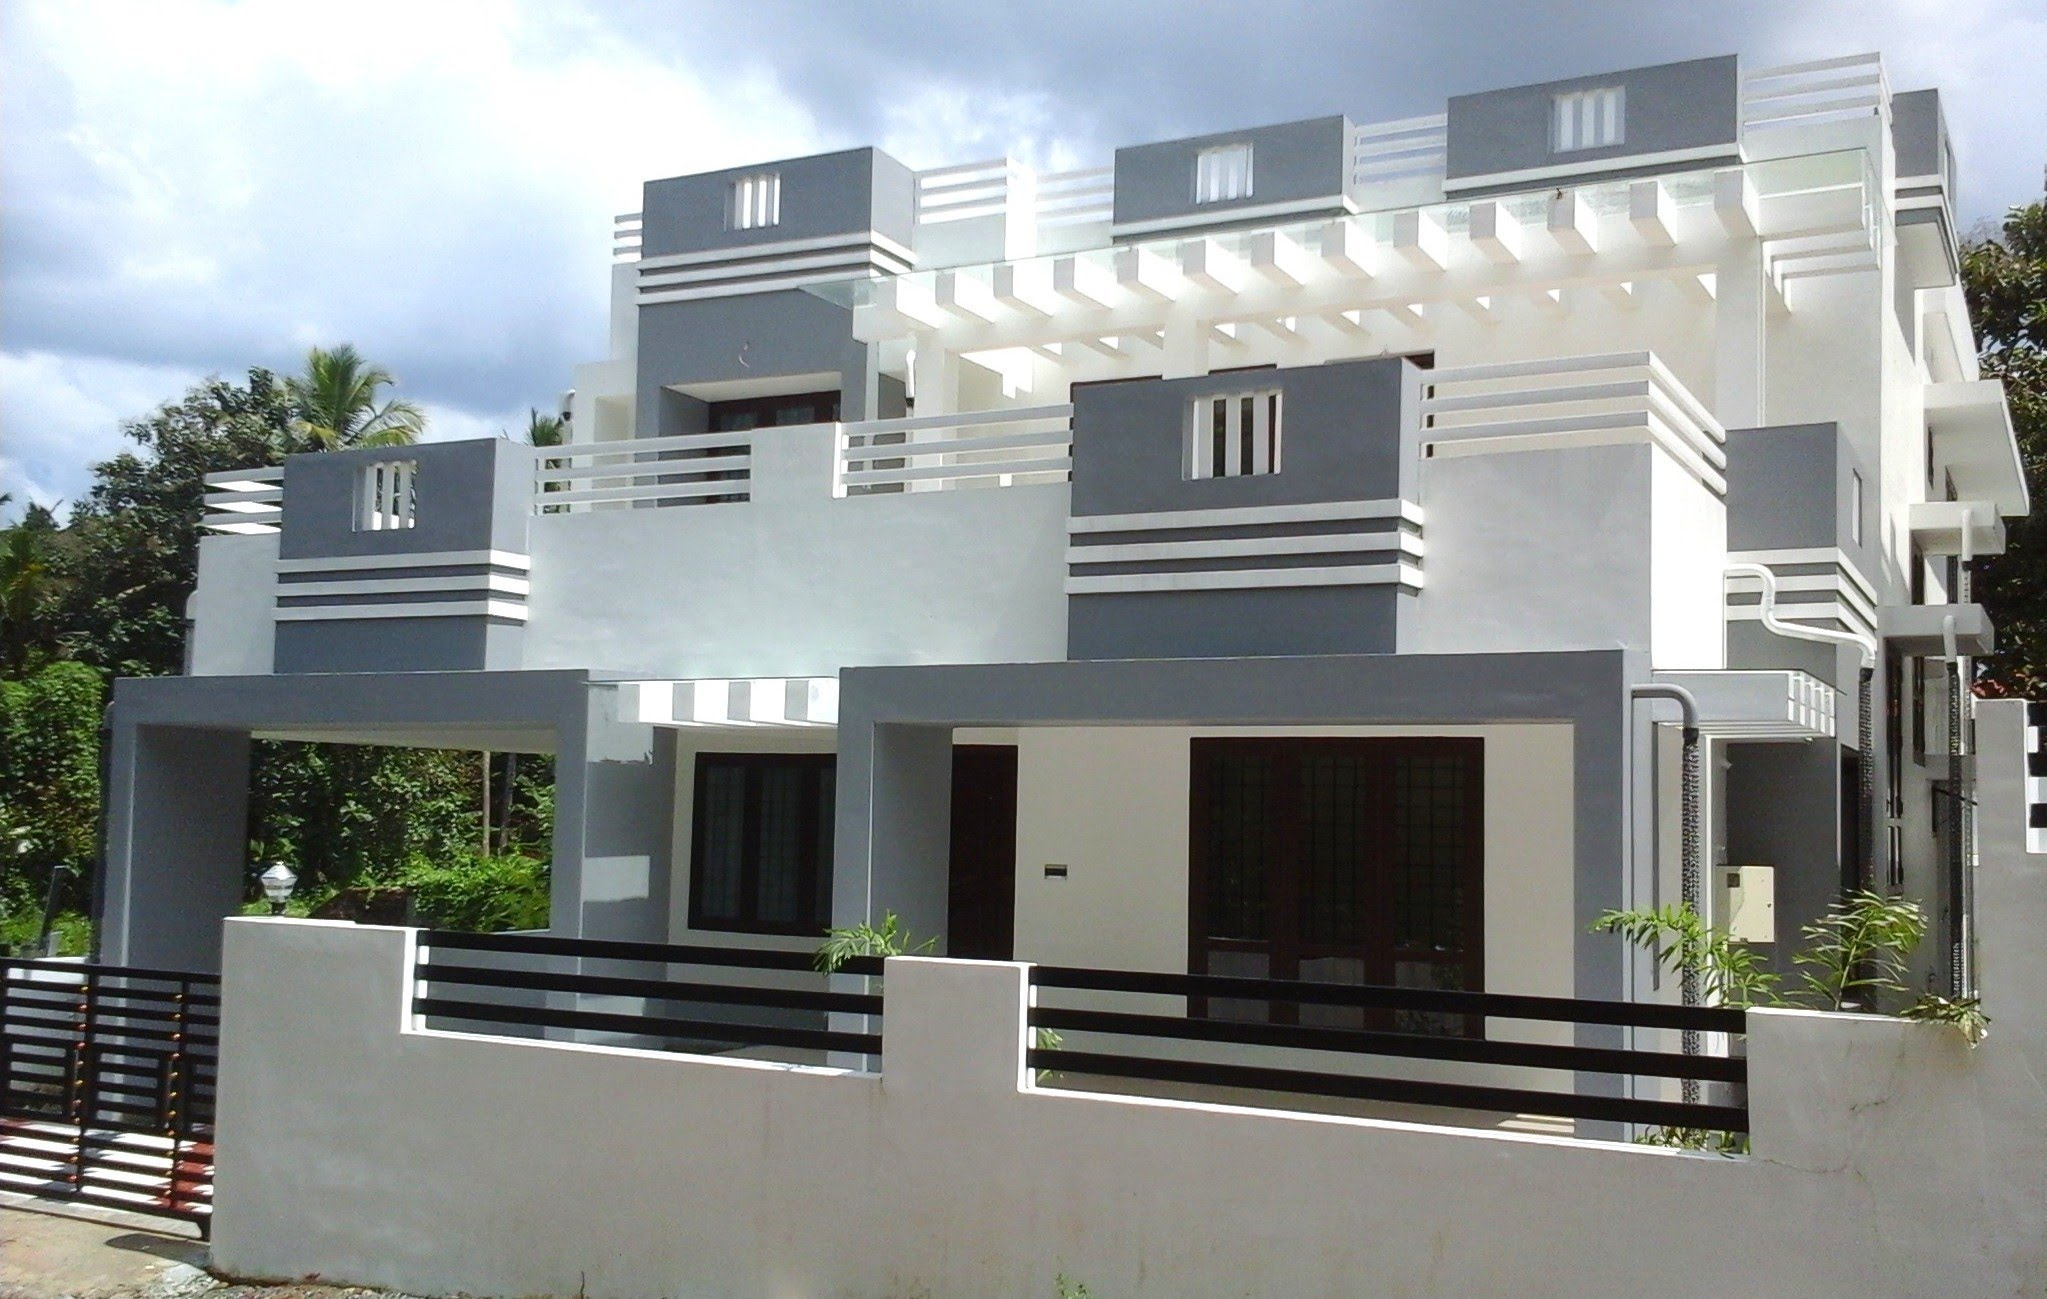 Villas In Thrissur Town Villas In Trichur Thrissur Villas